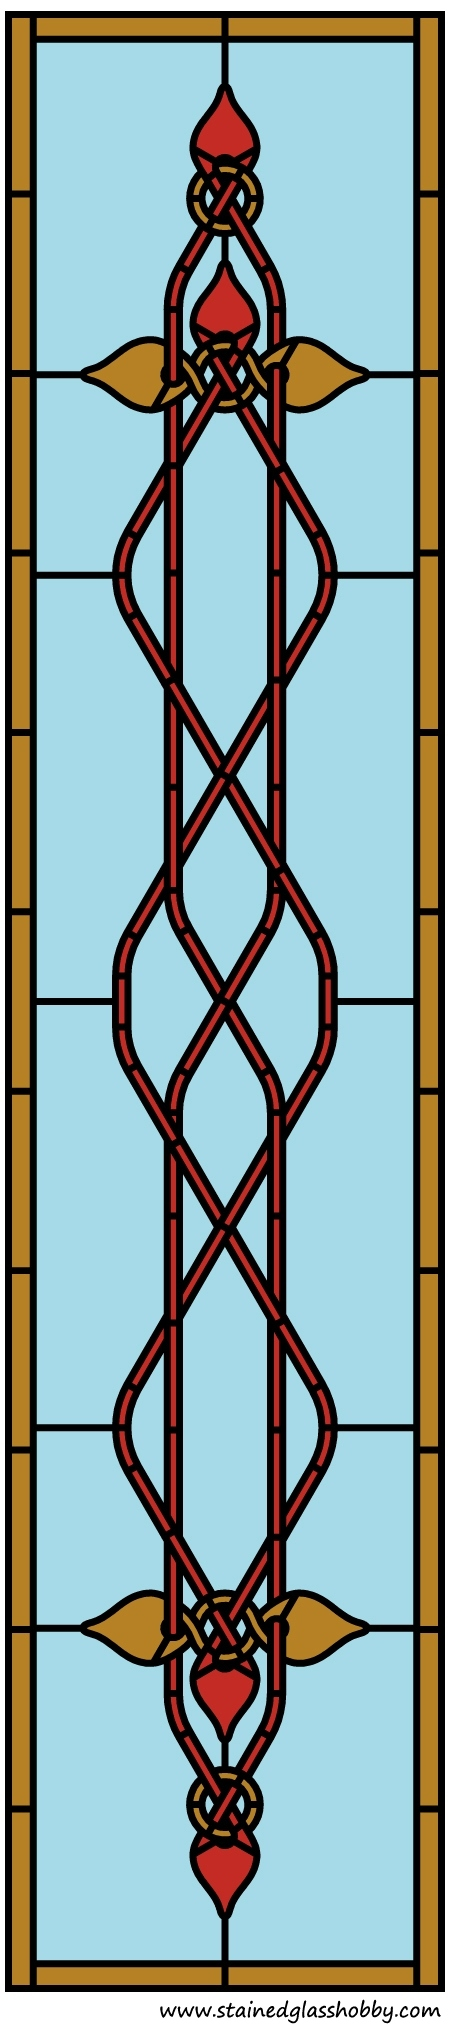 Celtic style stained glass panel